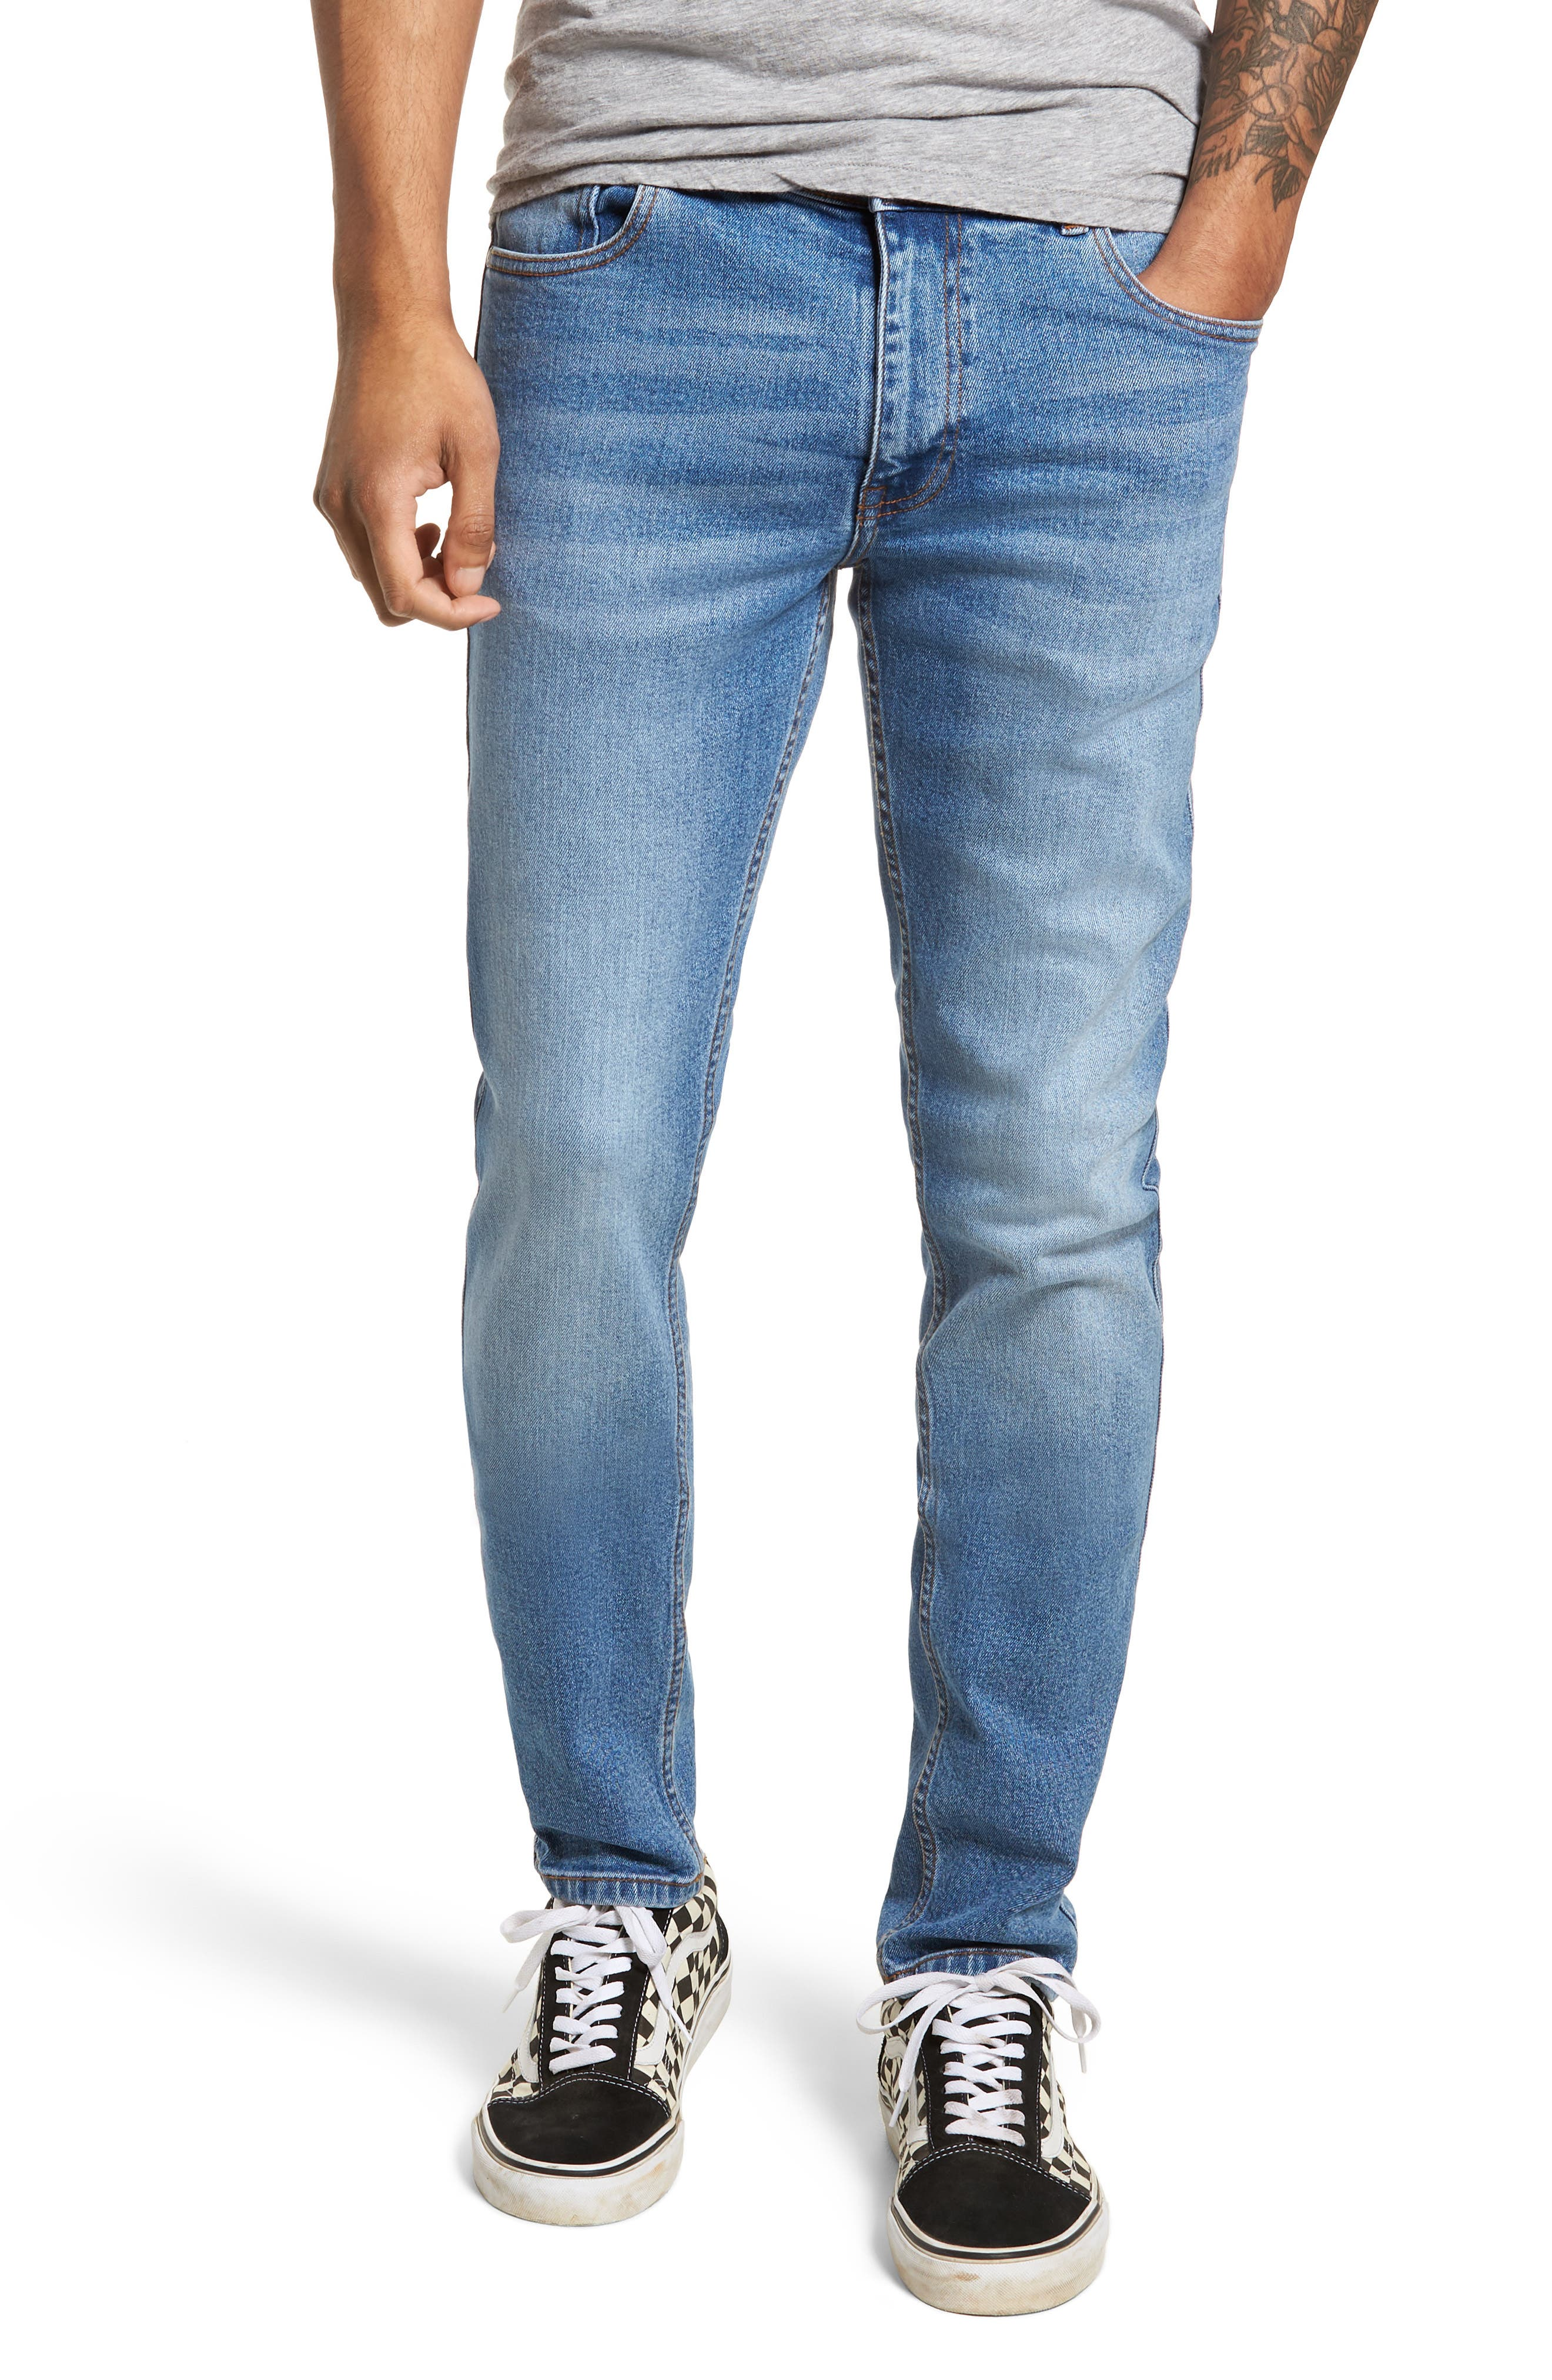 Dr. Denim Supply Co. Clark Slim Straight Leg Jeans (Shaded Mid Blue)